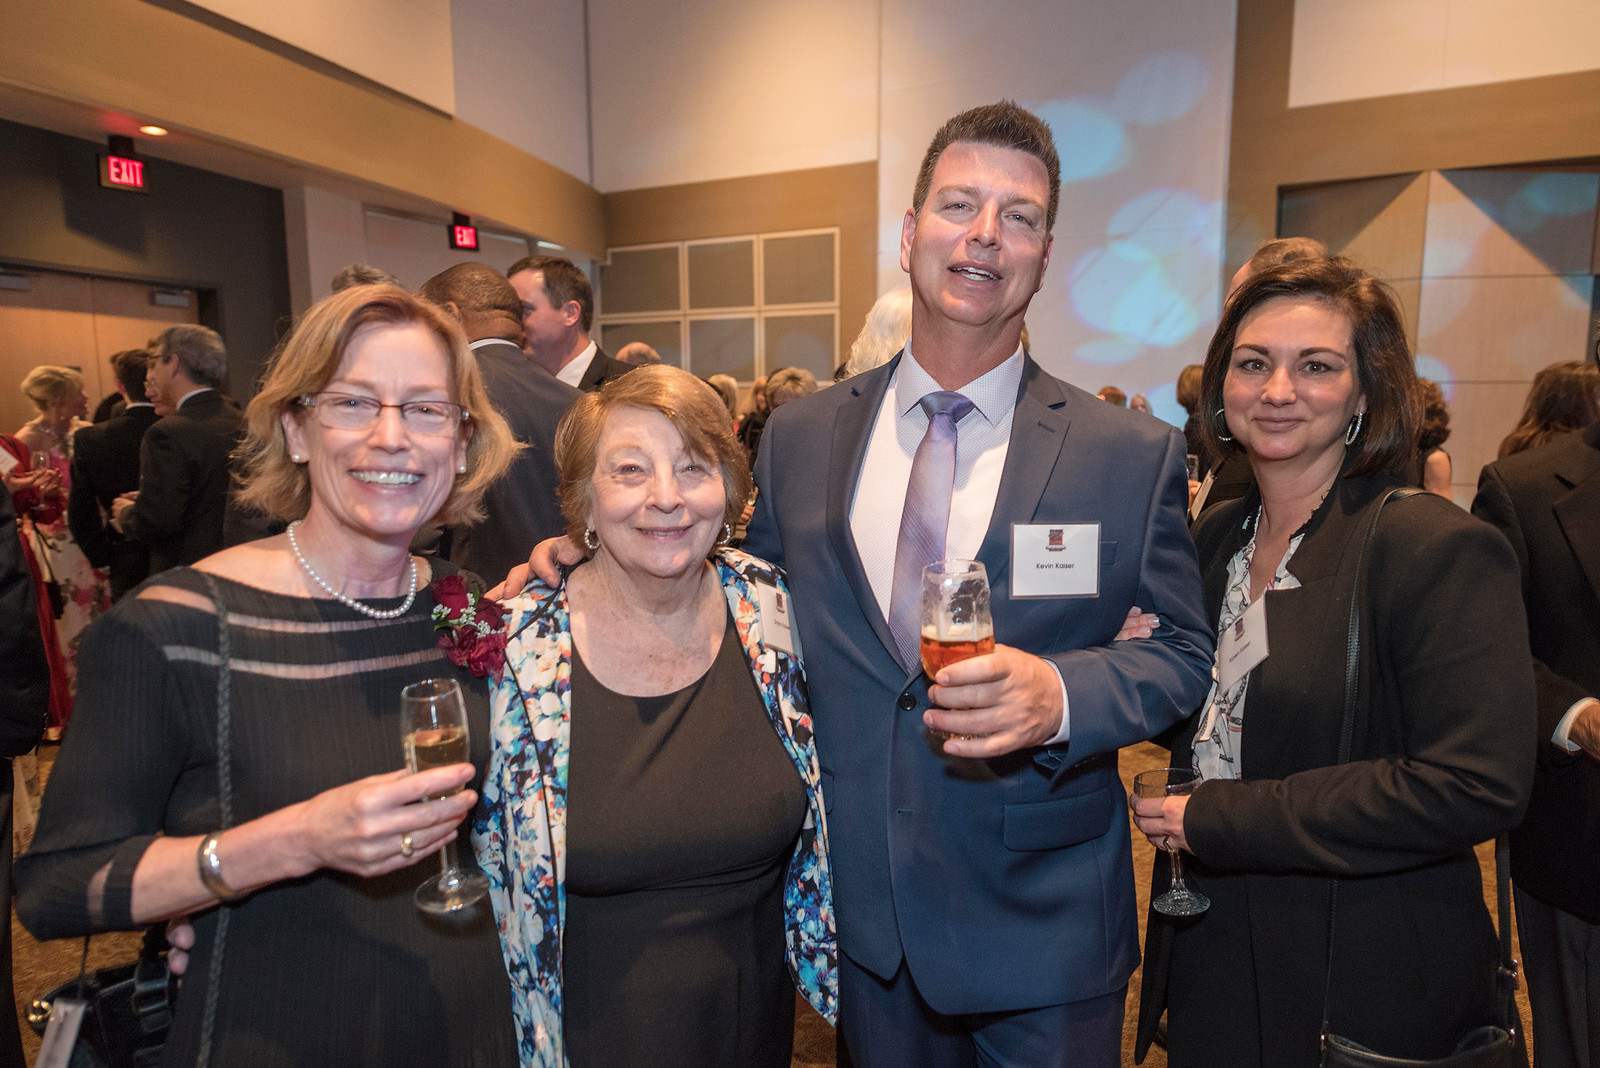 Distinguished Alumni Jenelle Ball (left), guests and honorees enjoy the Distinguished Alumni Dinner on Friday, March 24, 2017 in Chico, Calif. (Jason Halley/University Photographer)